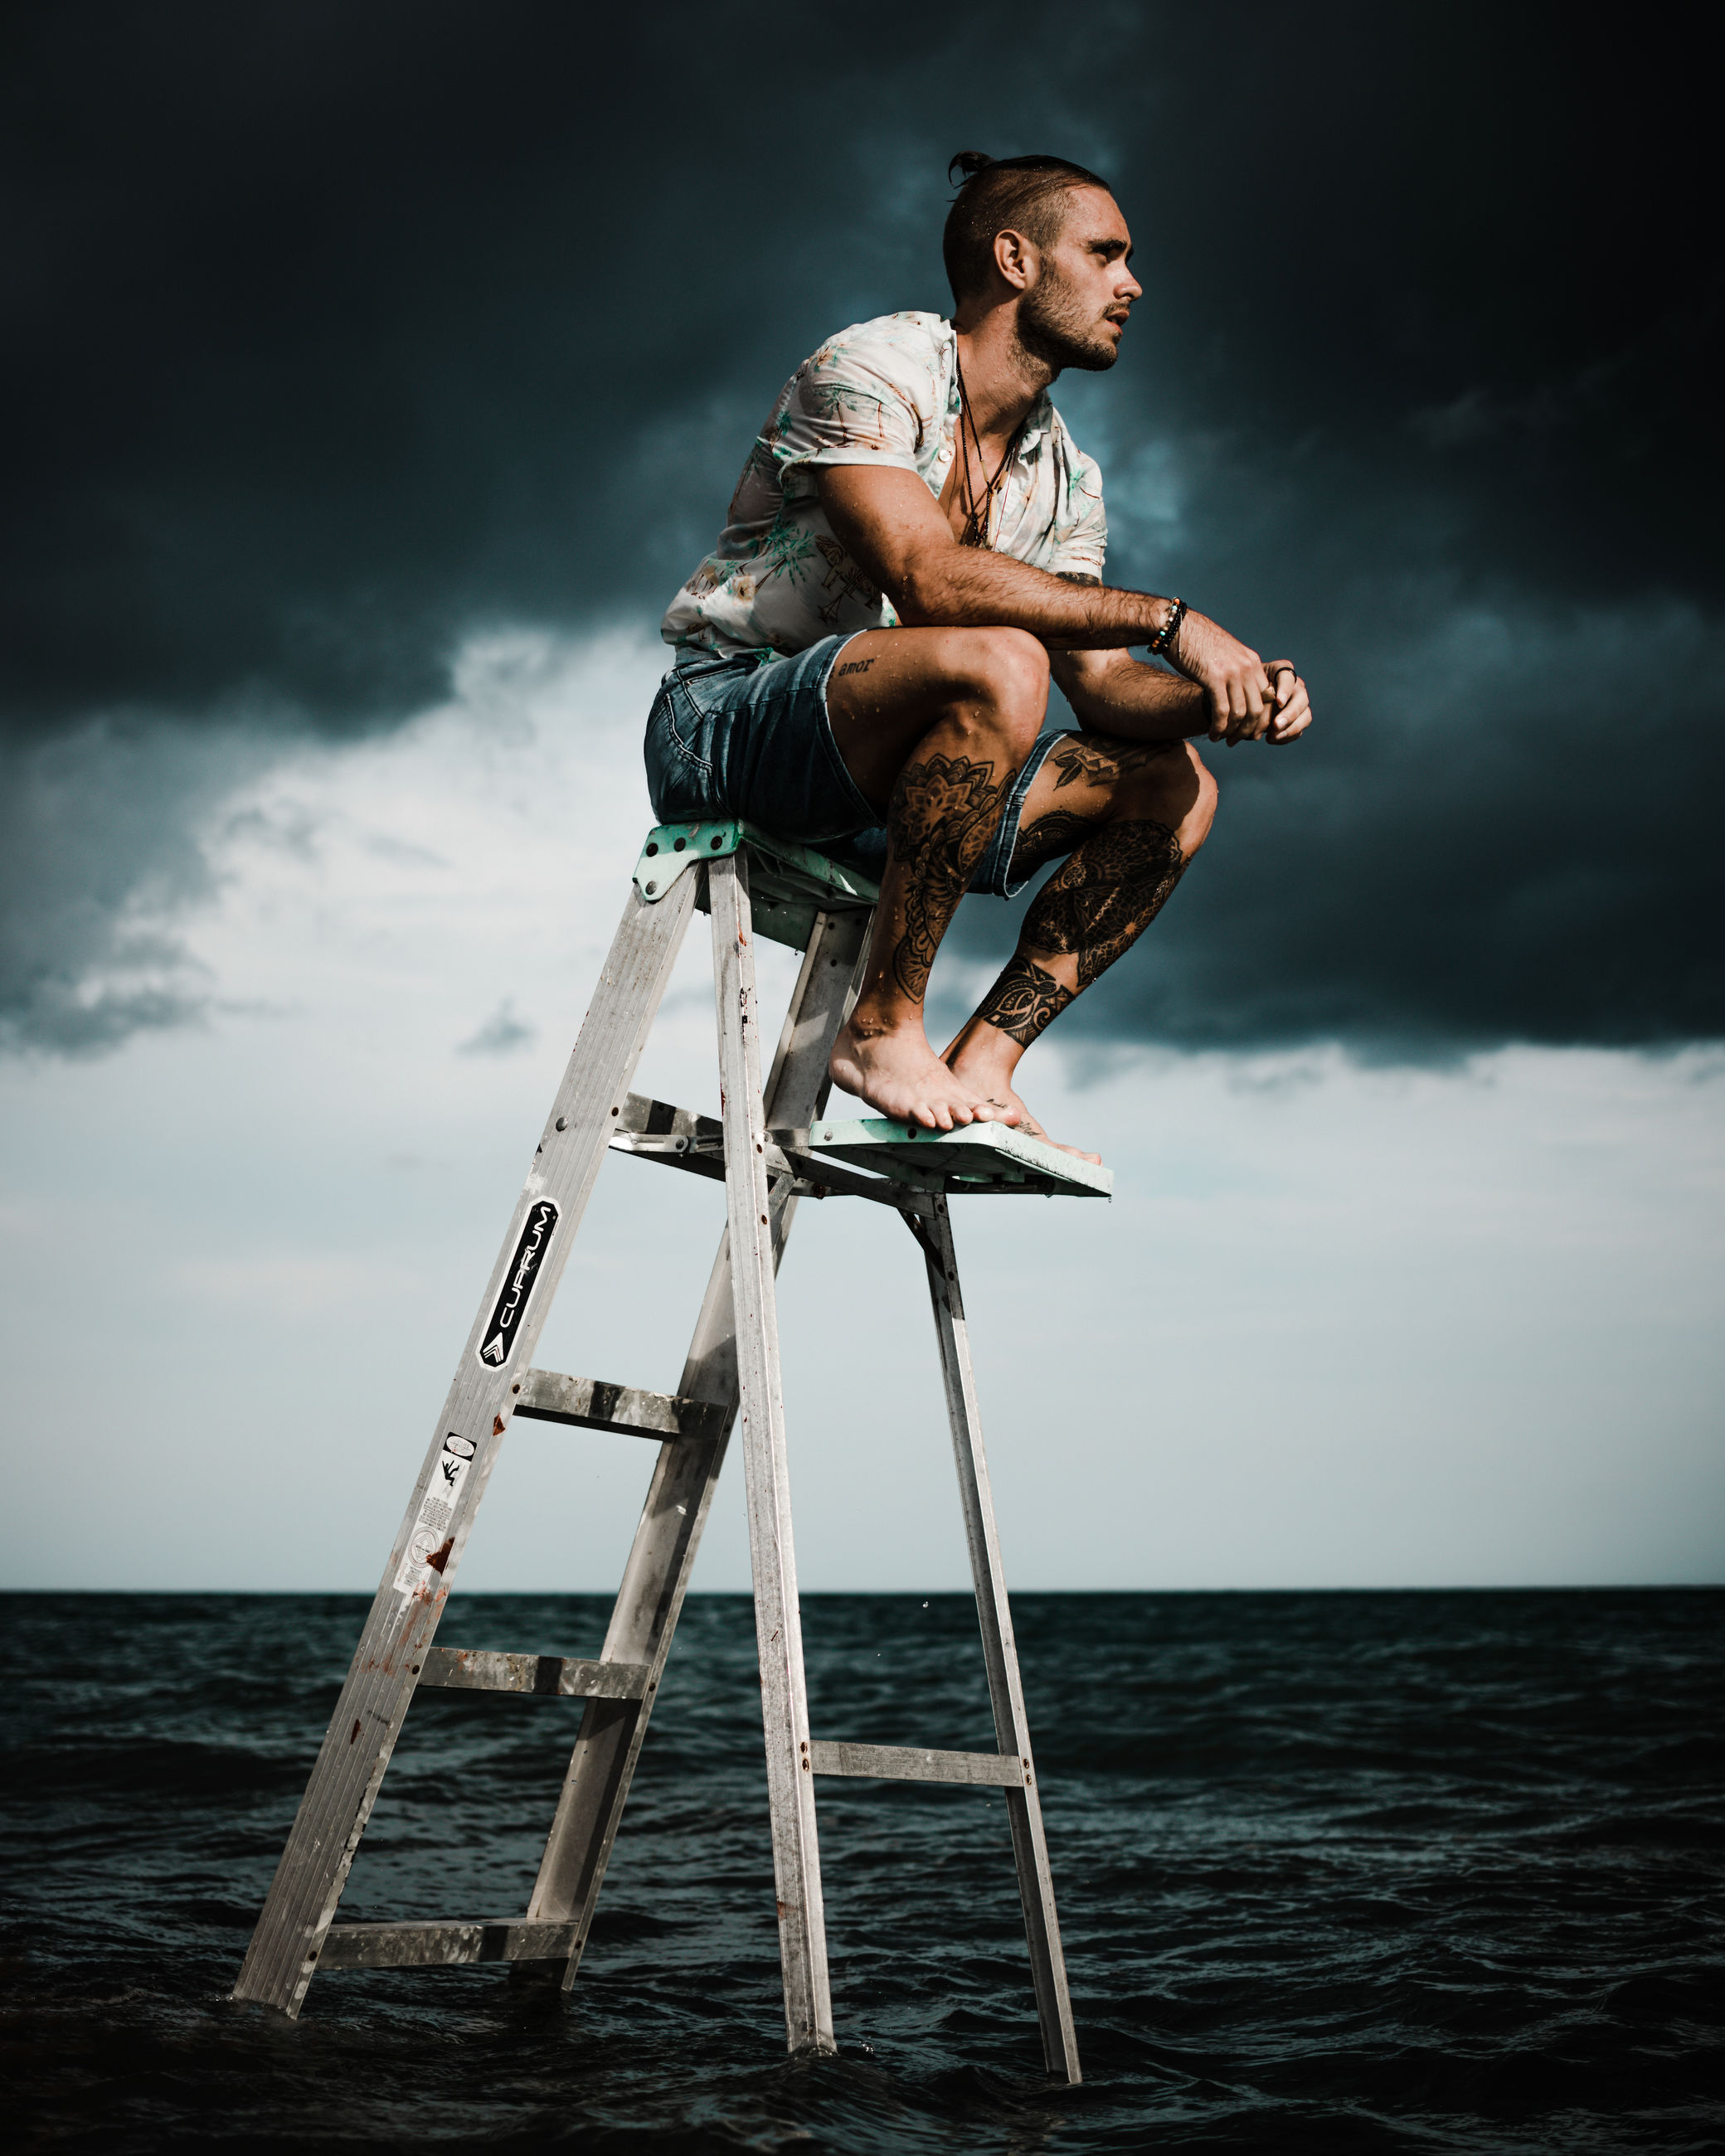 sky, cloud, full length, adult, one person, water, sea, ladder, men, nature, young adult, sitting, blue, activity, land, person, occupation, copy space, sports, beauty in nature, tripod, outdoors